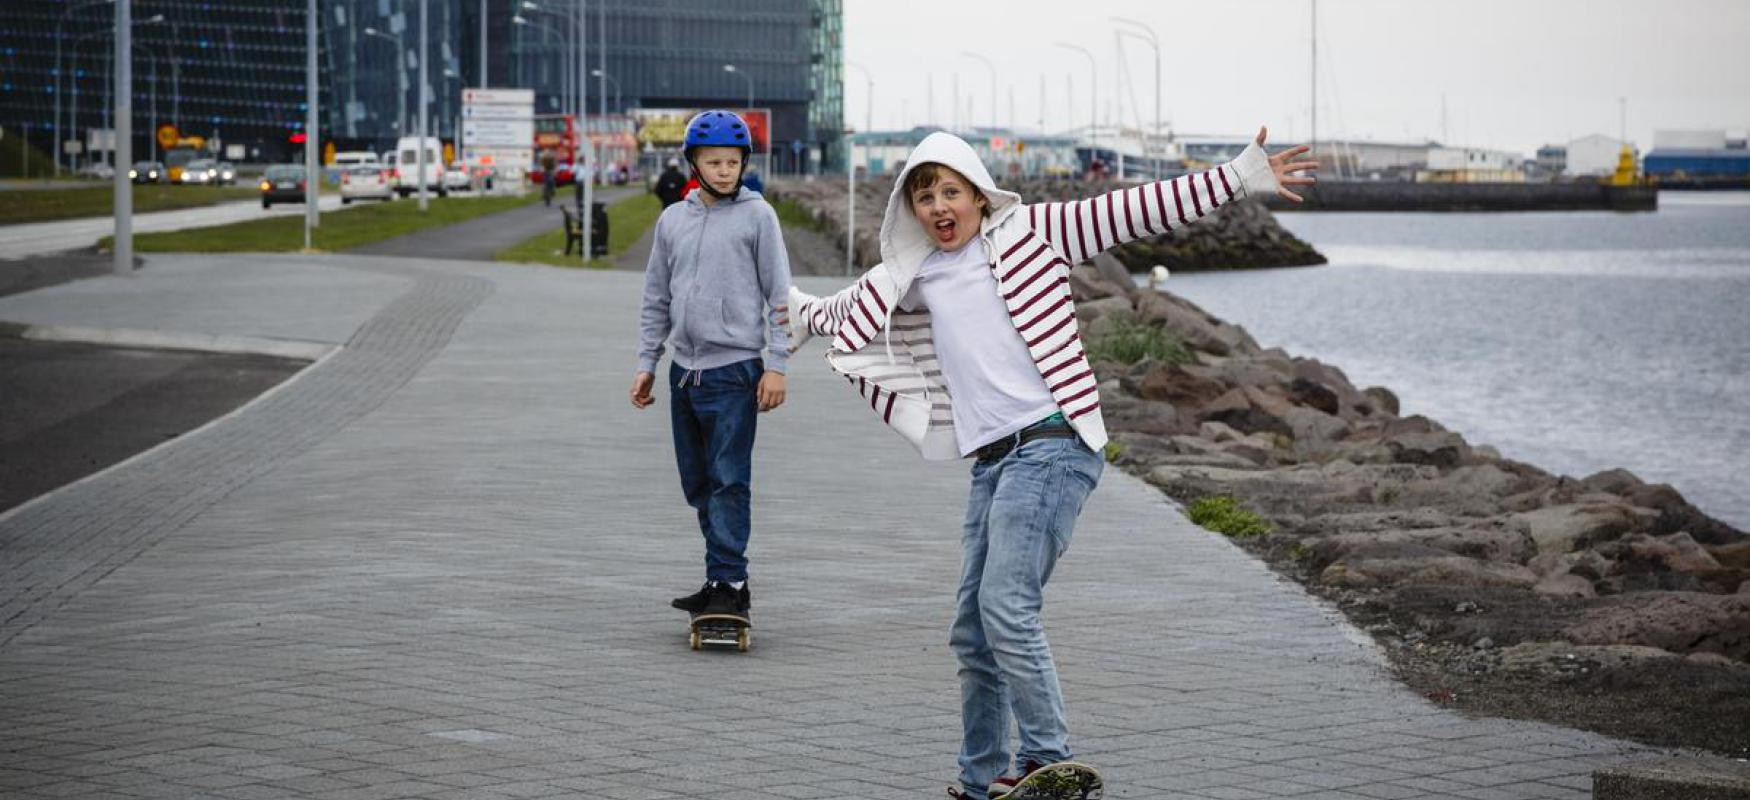 Teenagers skating in Reykjavik